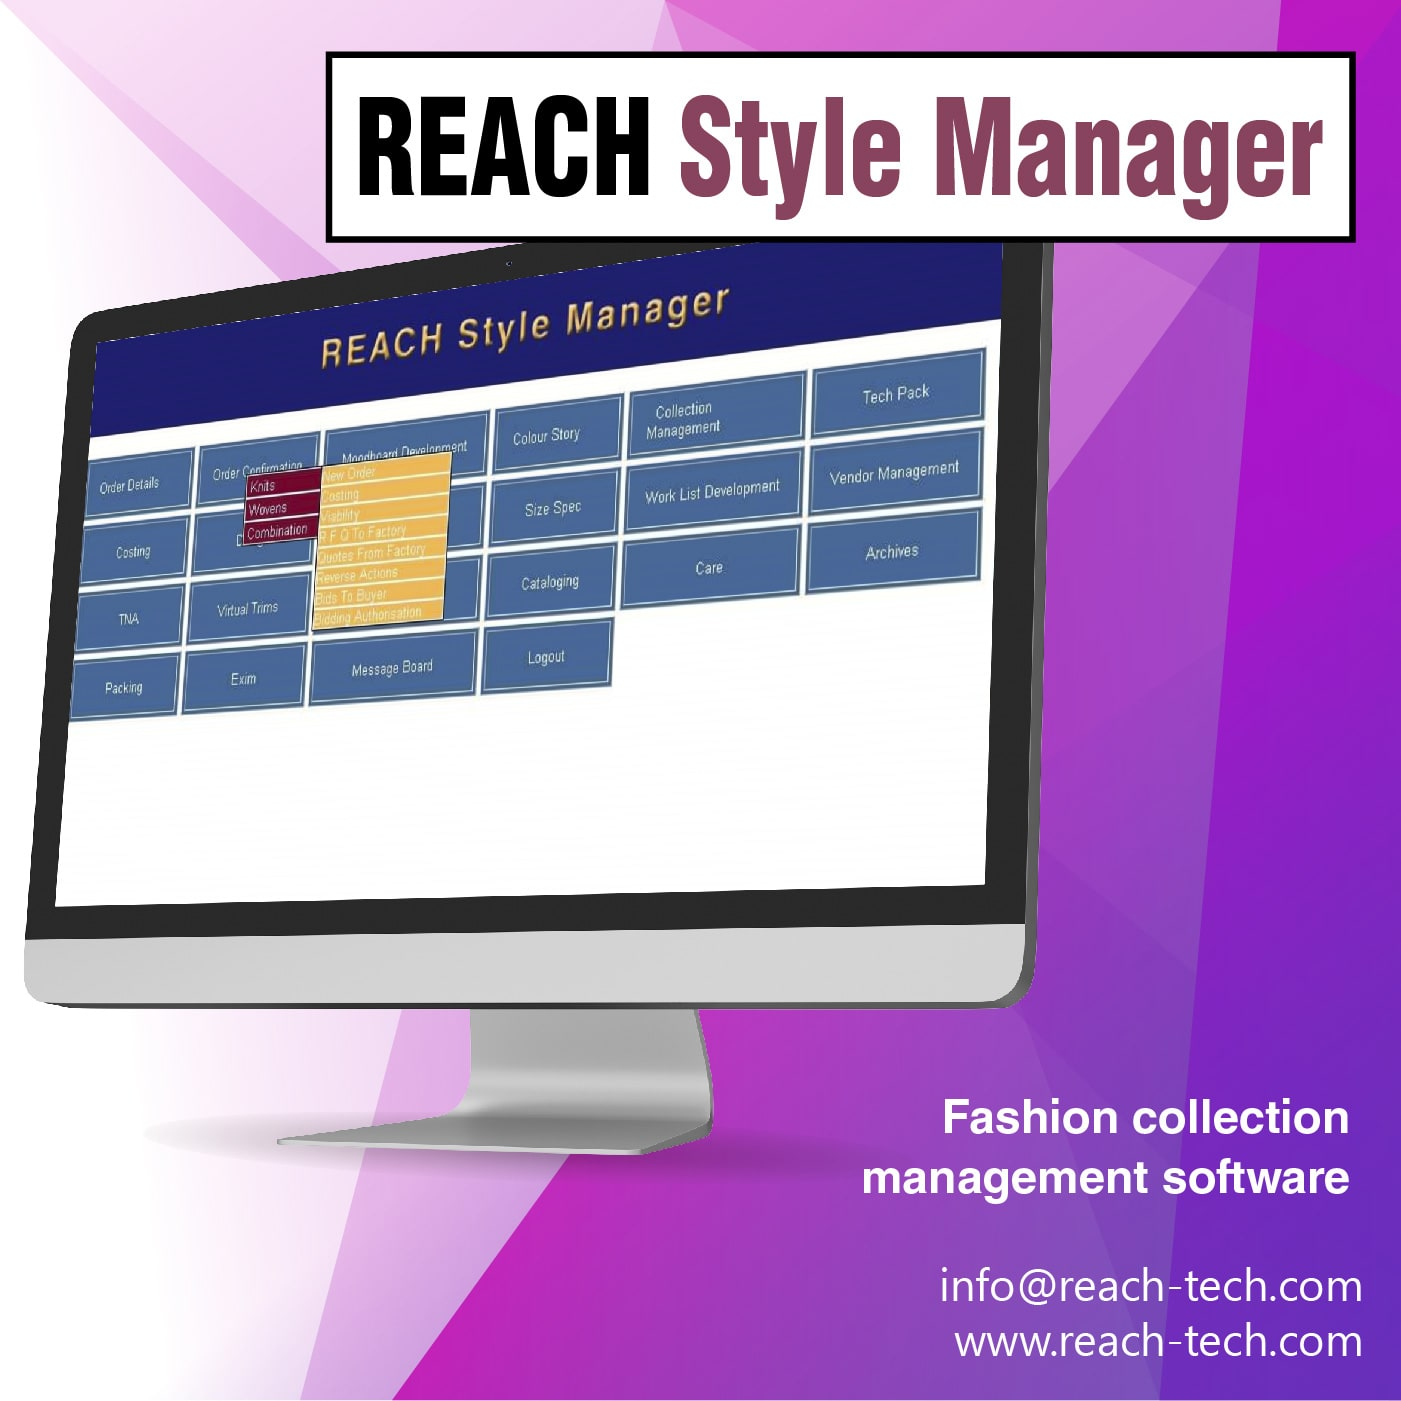 apparel-collection-management-software-3